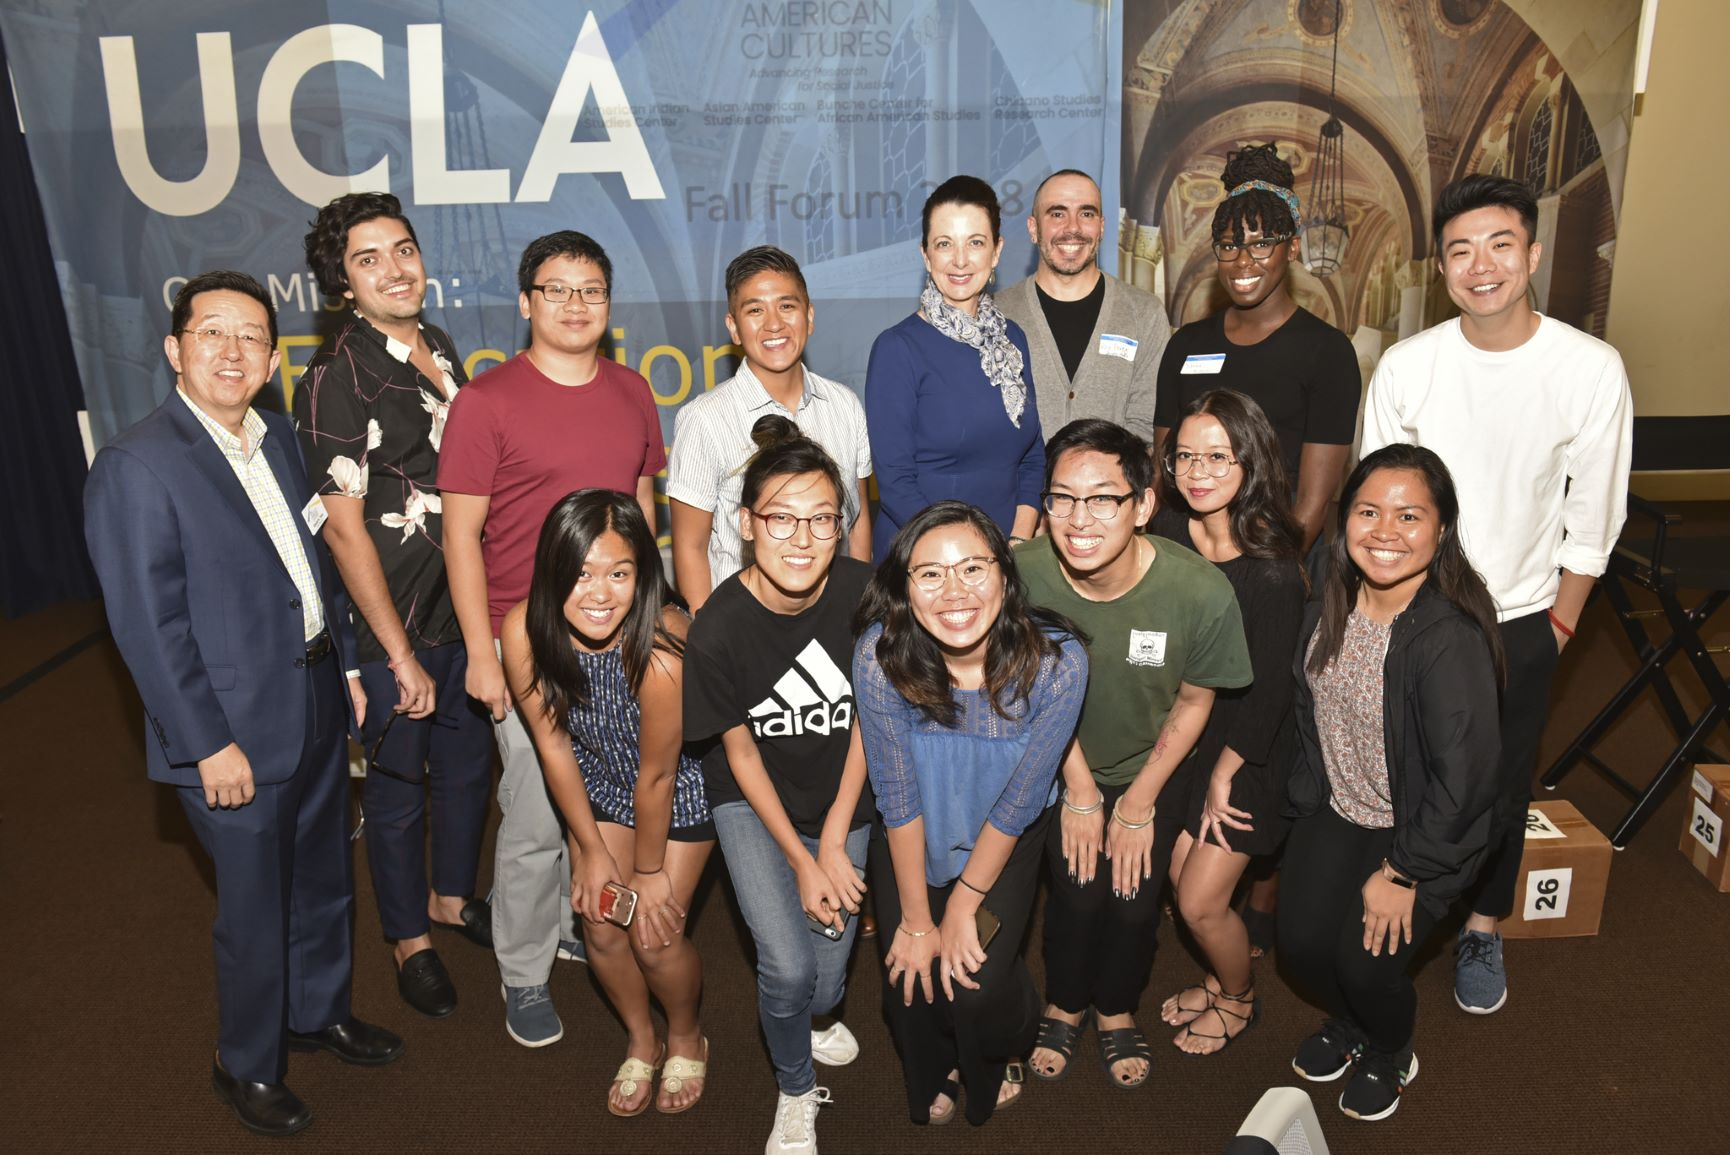 Diversity and Social Action Work Showcased at Annual iAC Fall Forum